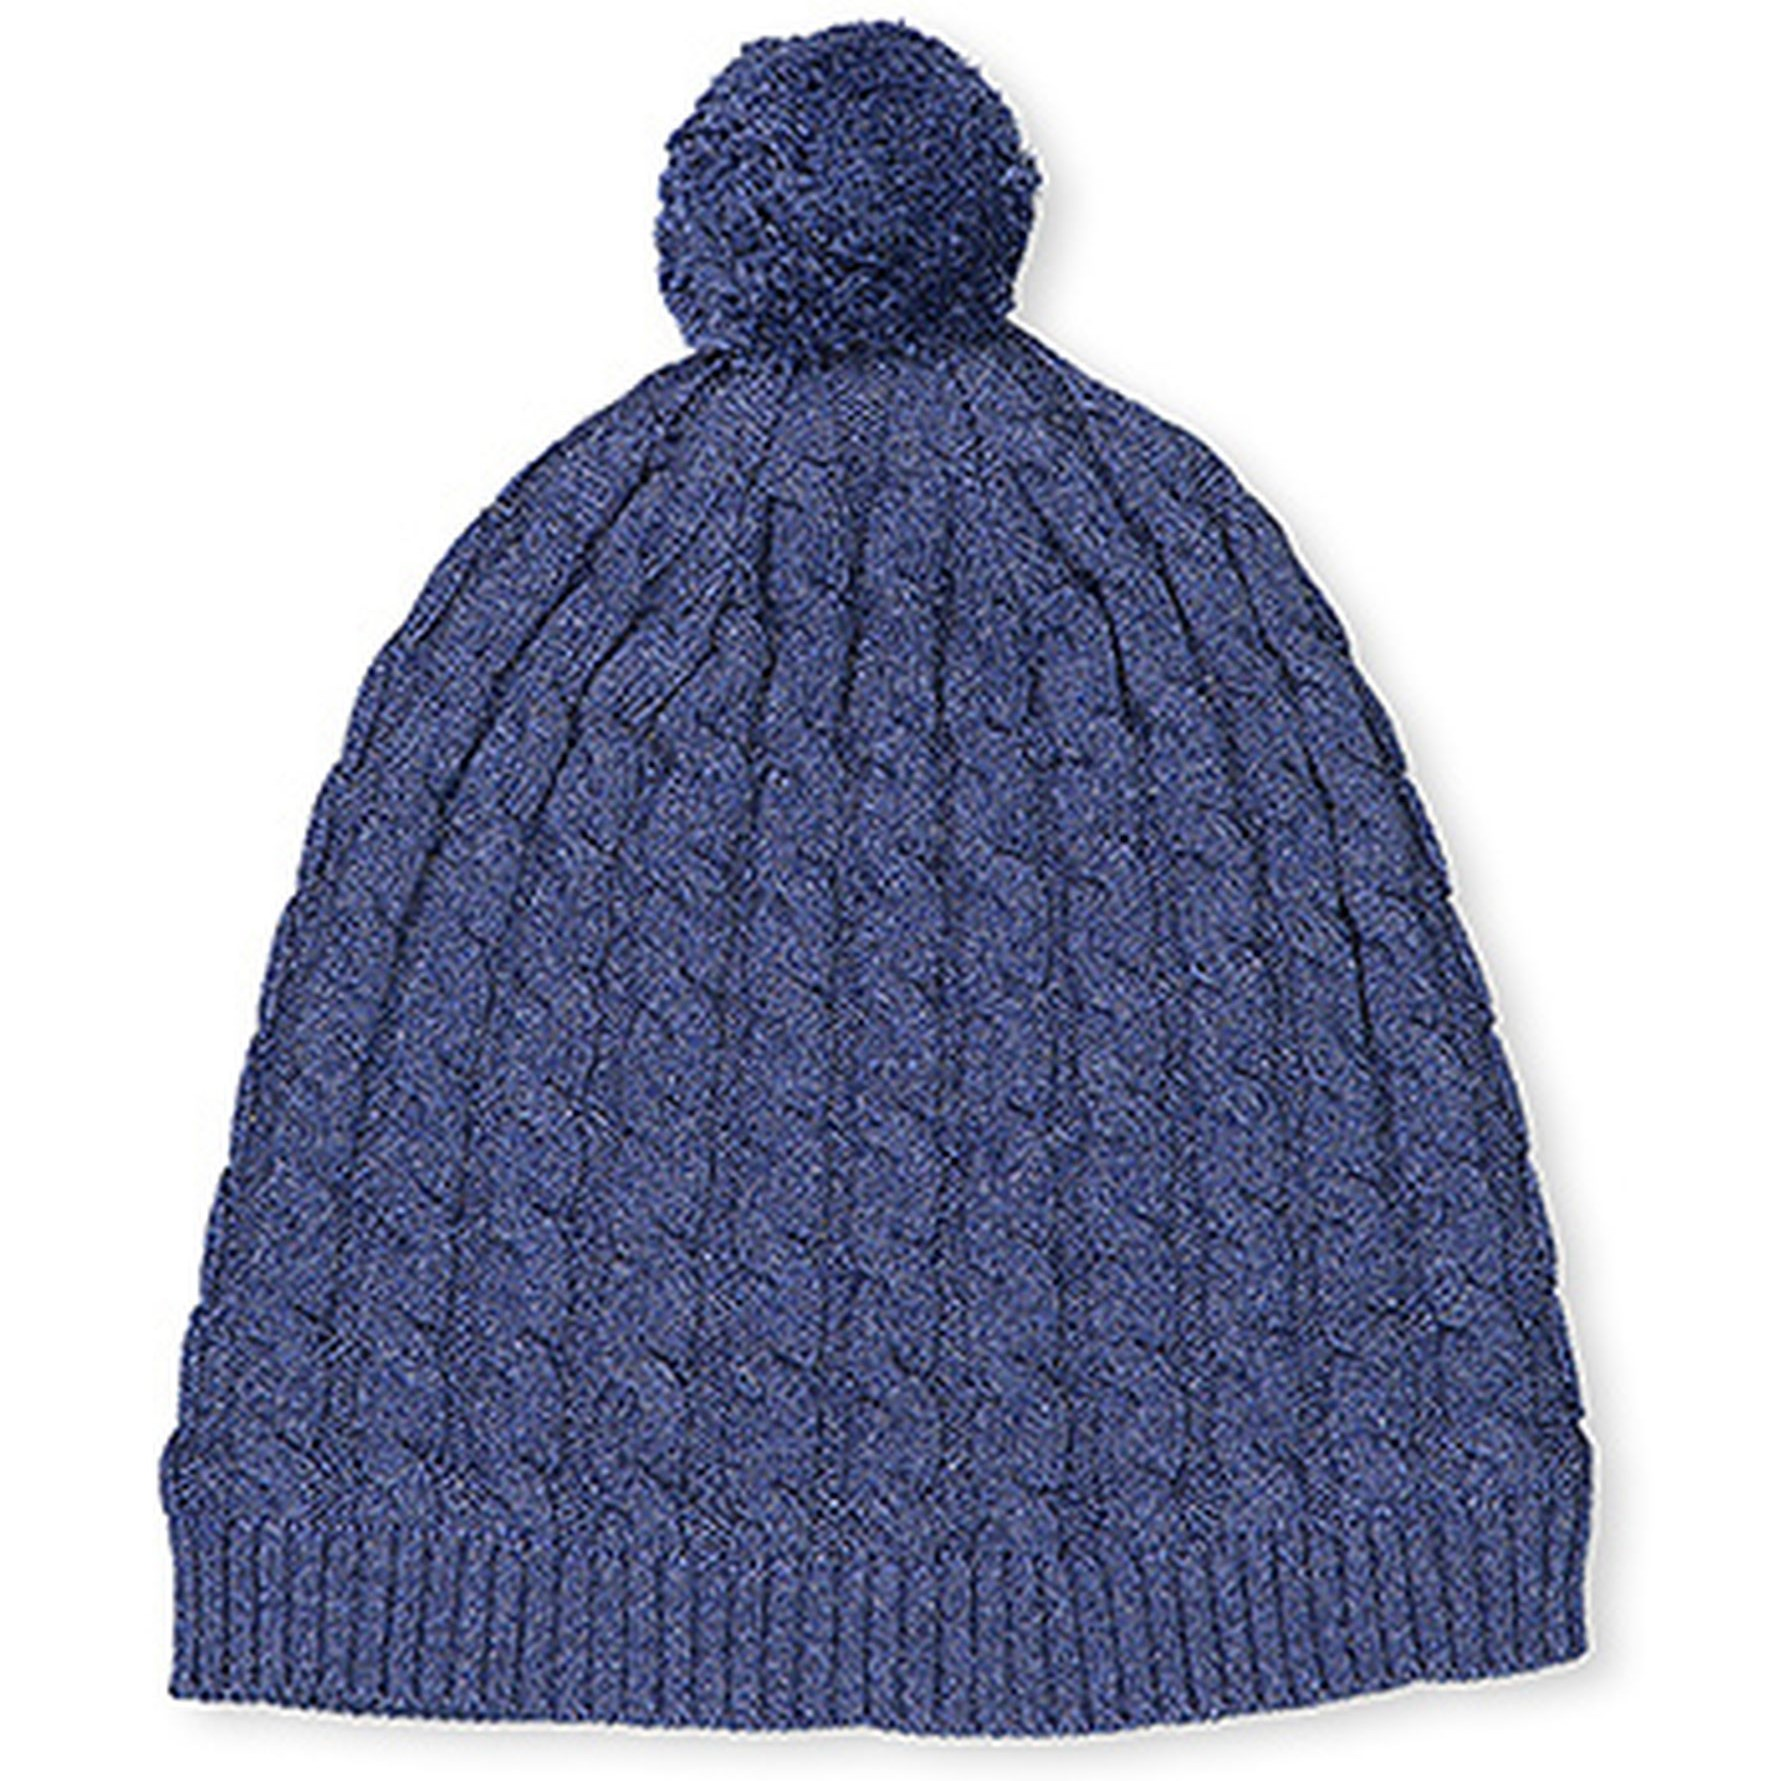 993134e3b3cca7 Milky Beanie - Navy - CLOTHING-HATS-Winter Hats : Kid Republic - W19 MILKY  D1